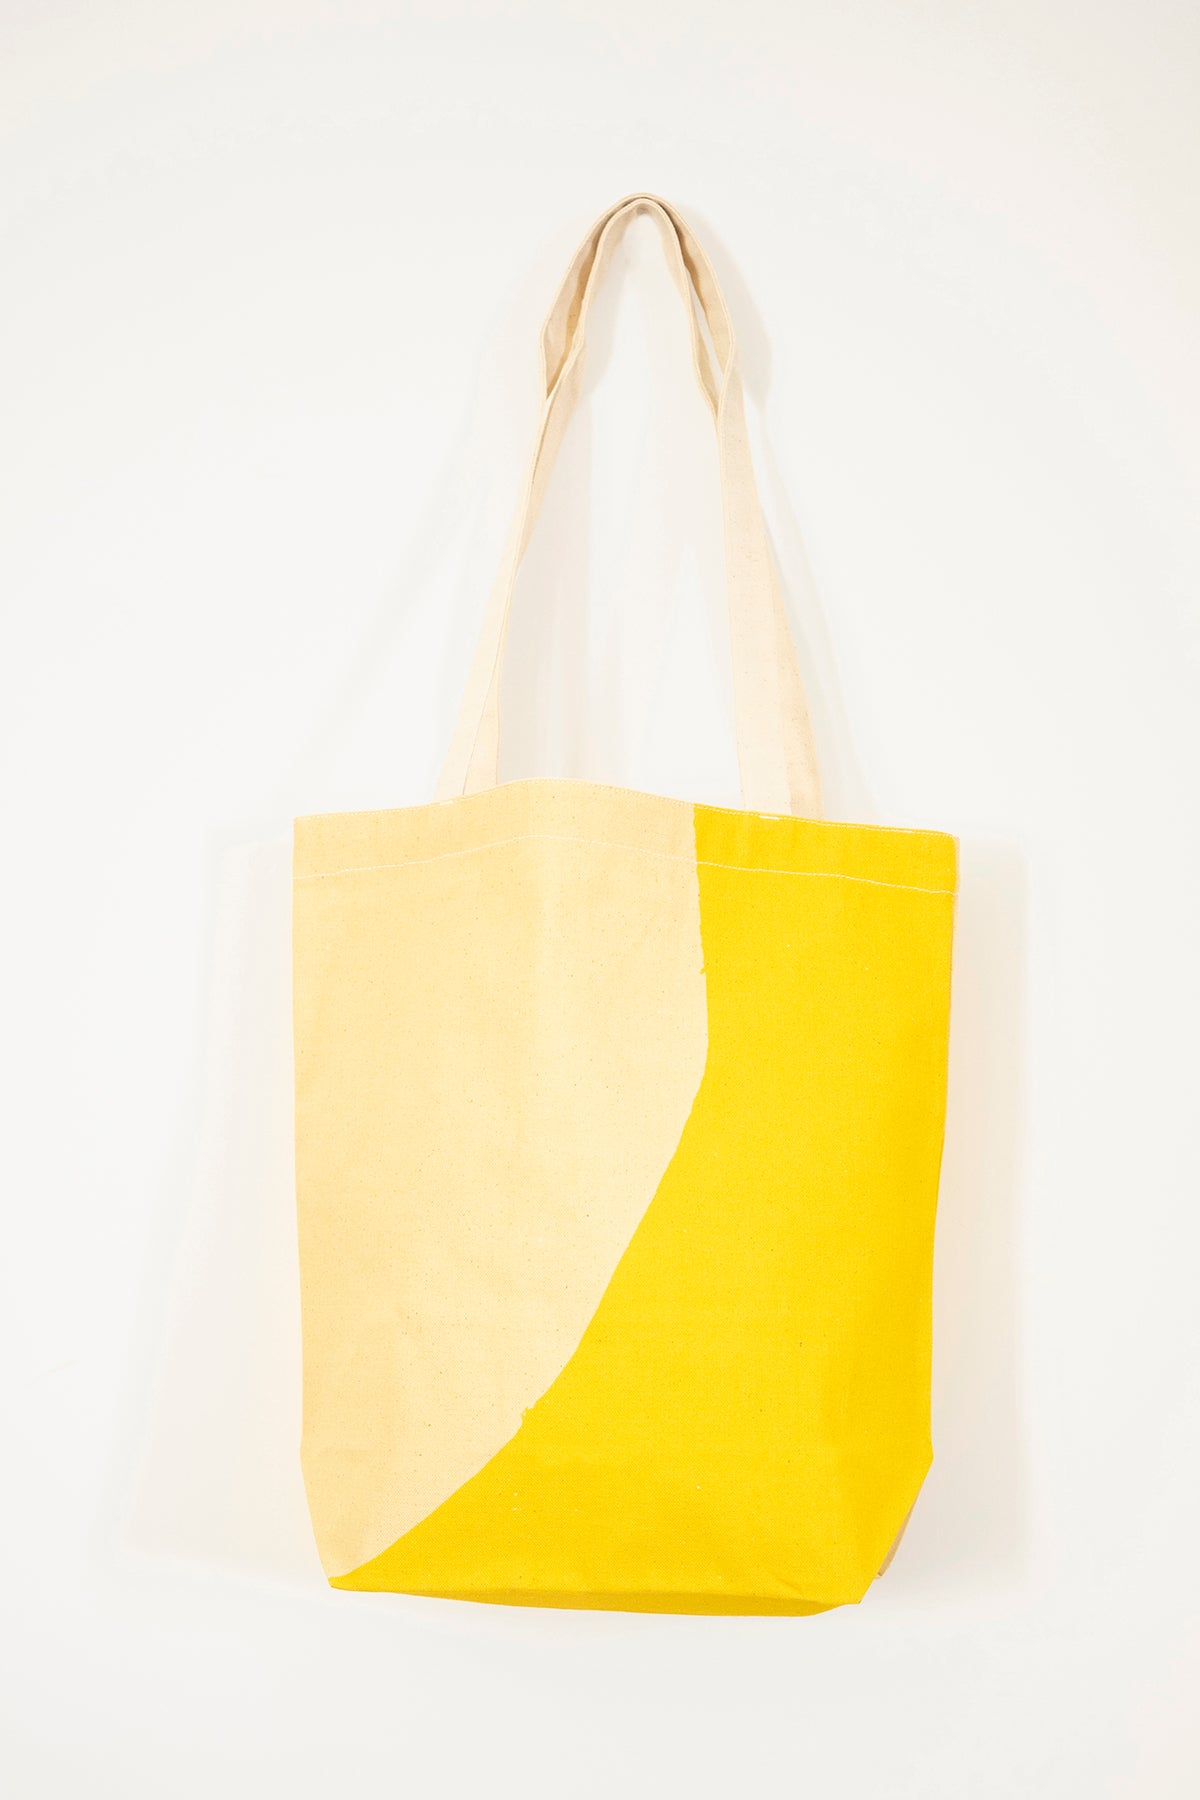 AURORA - Gold | Tote Bag